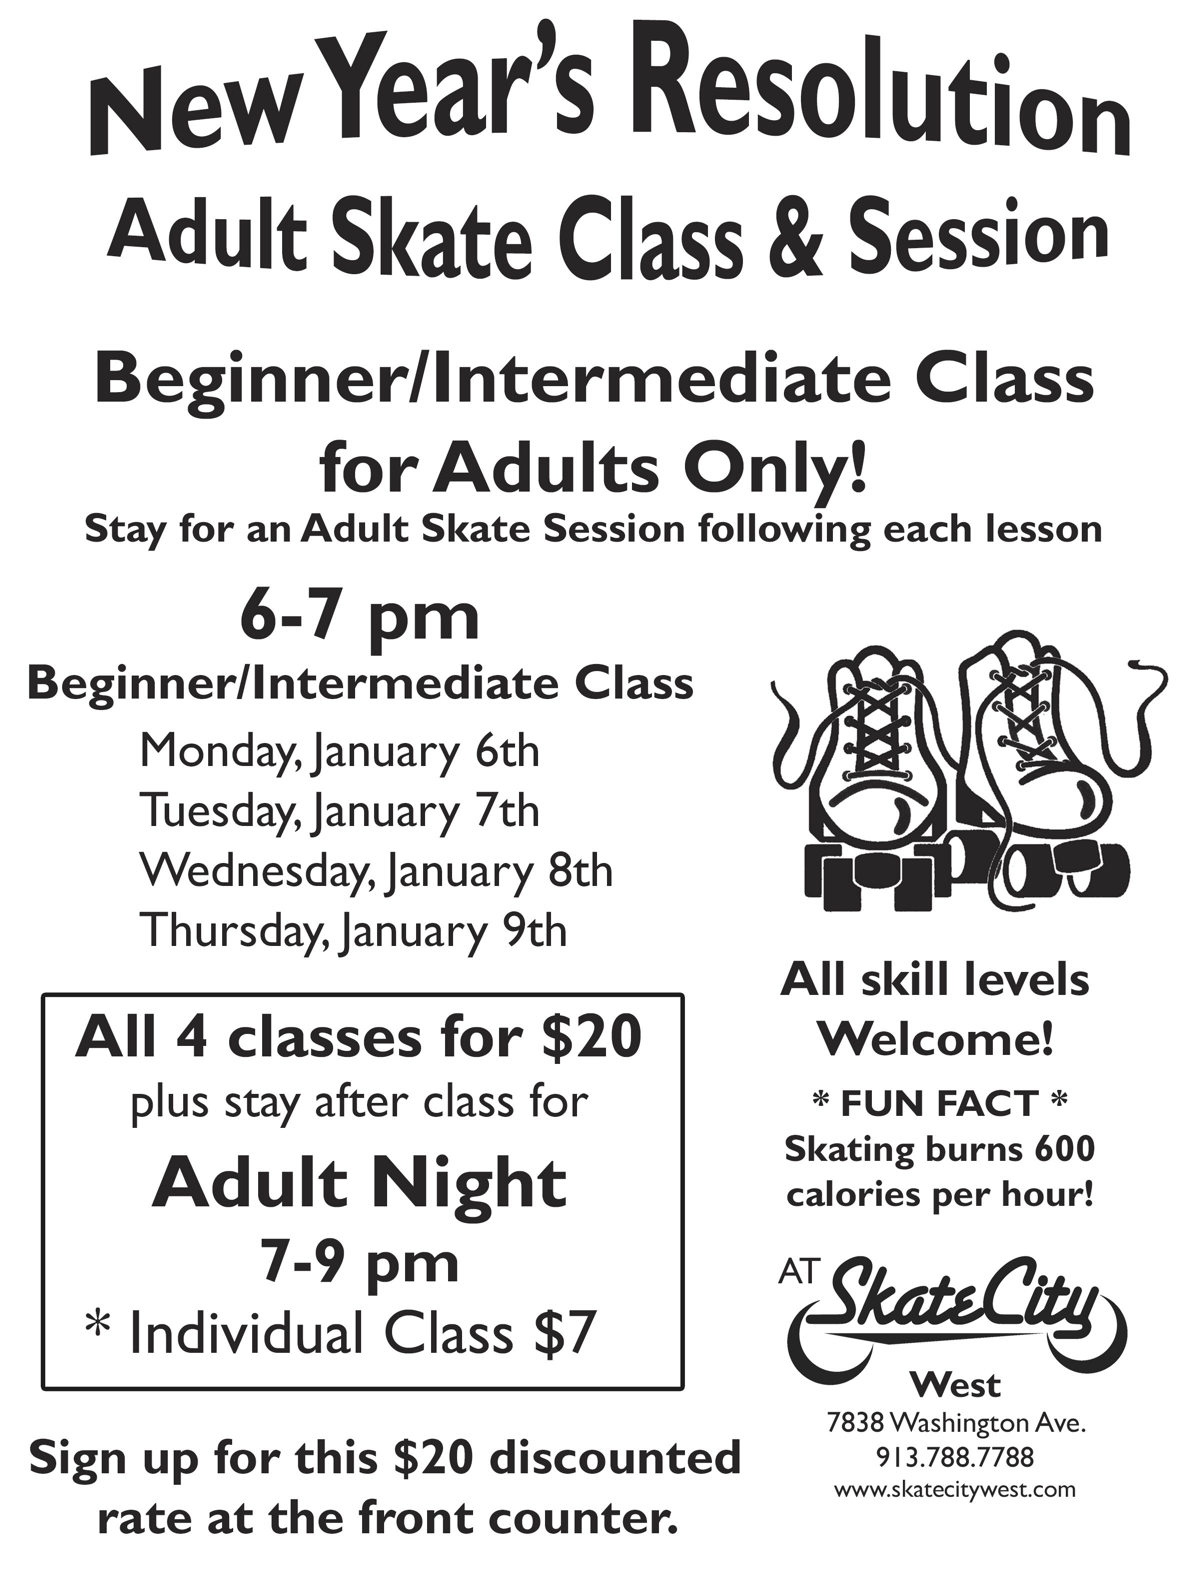 Adult class and session copy